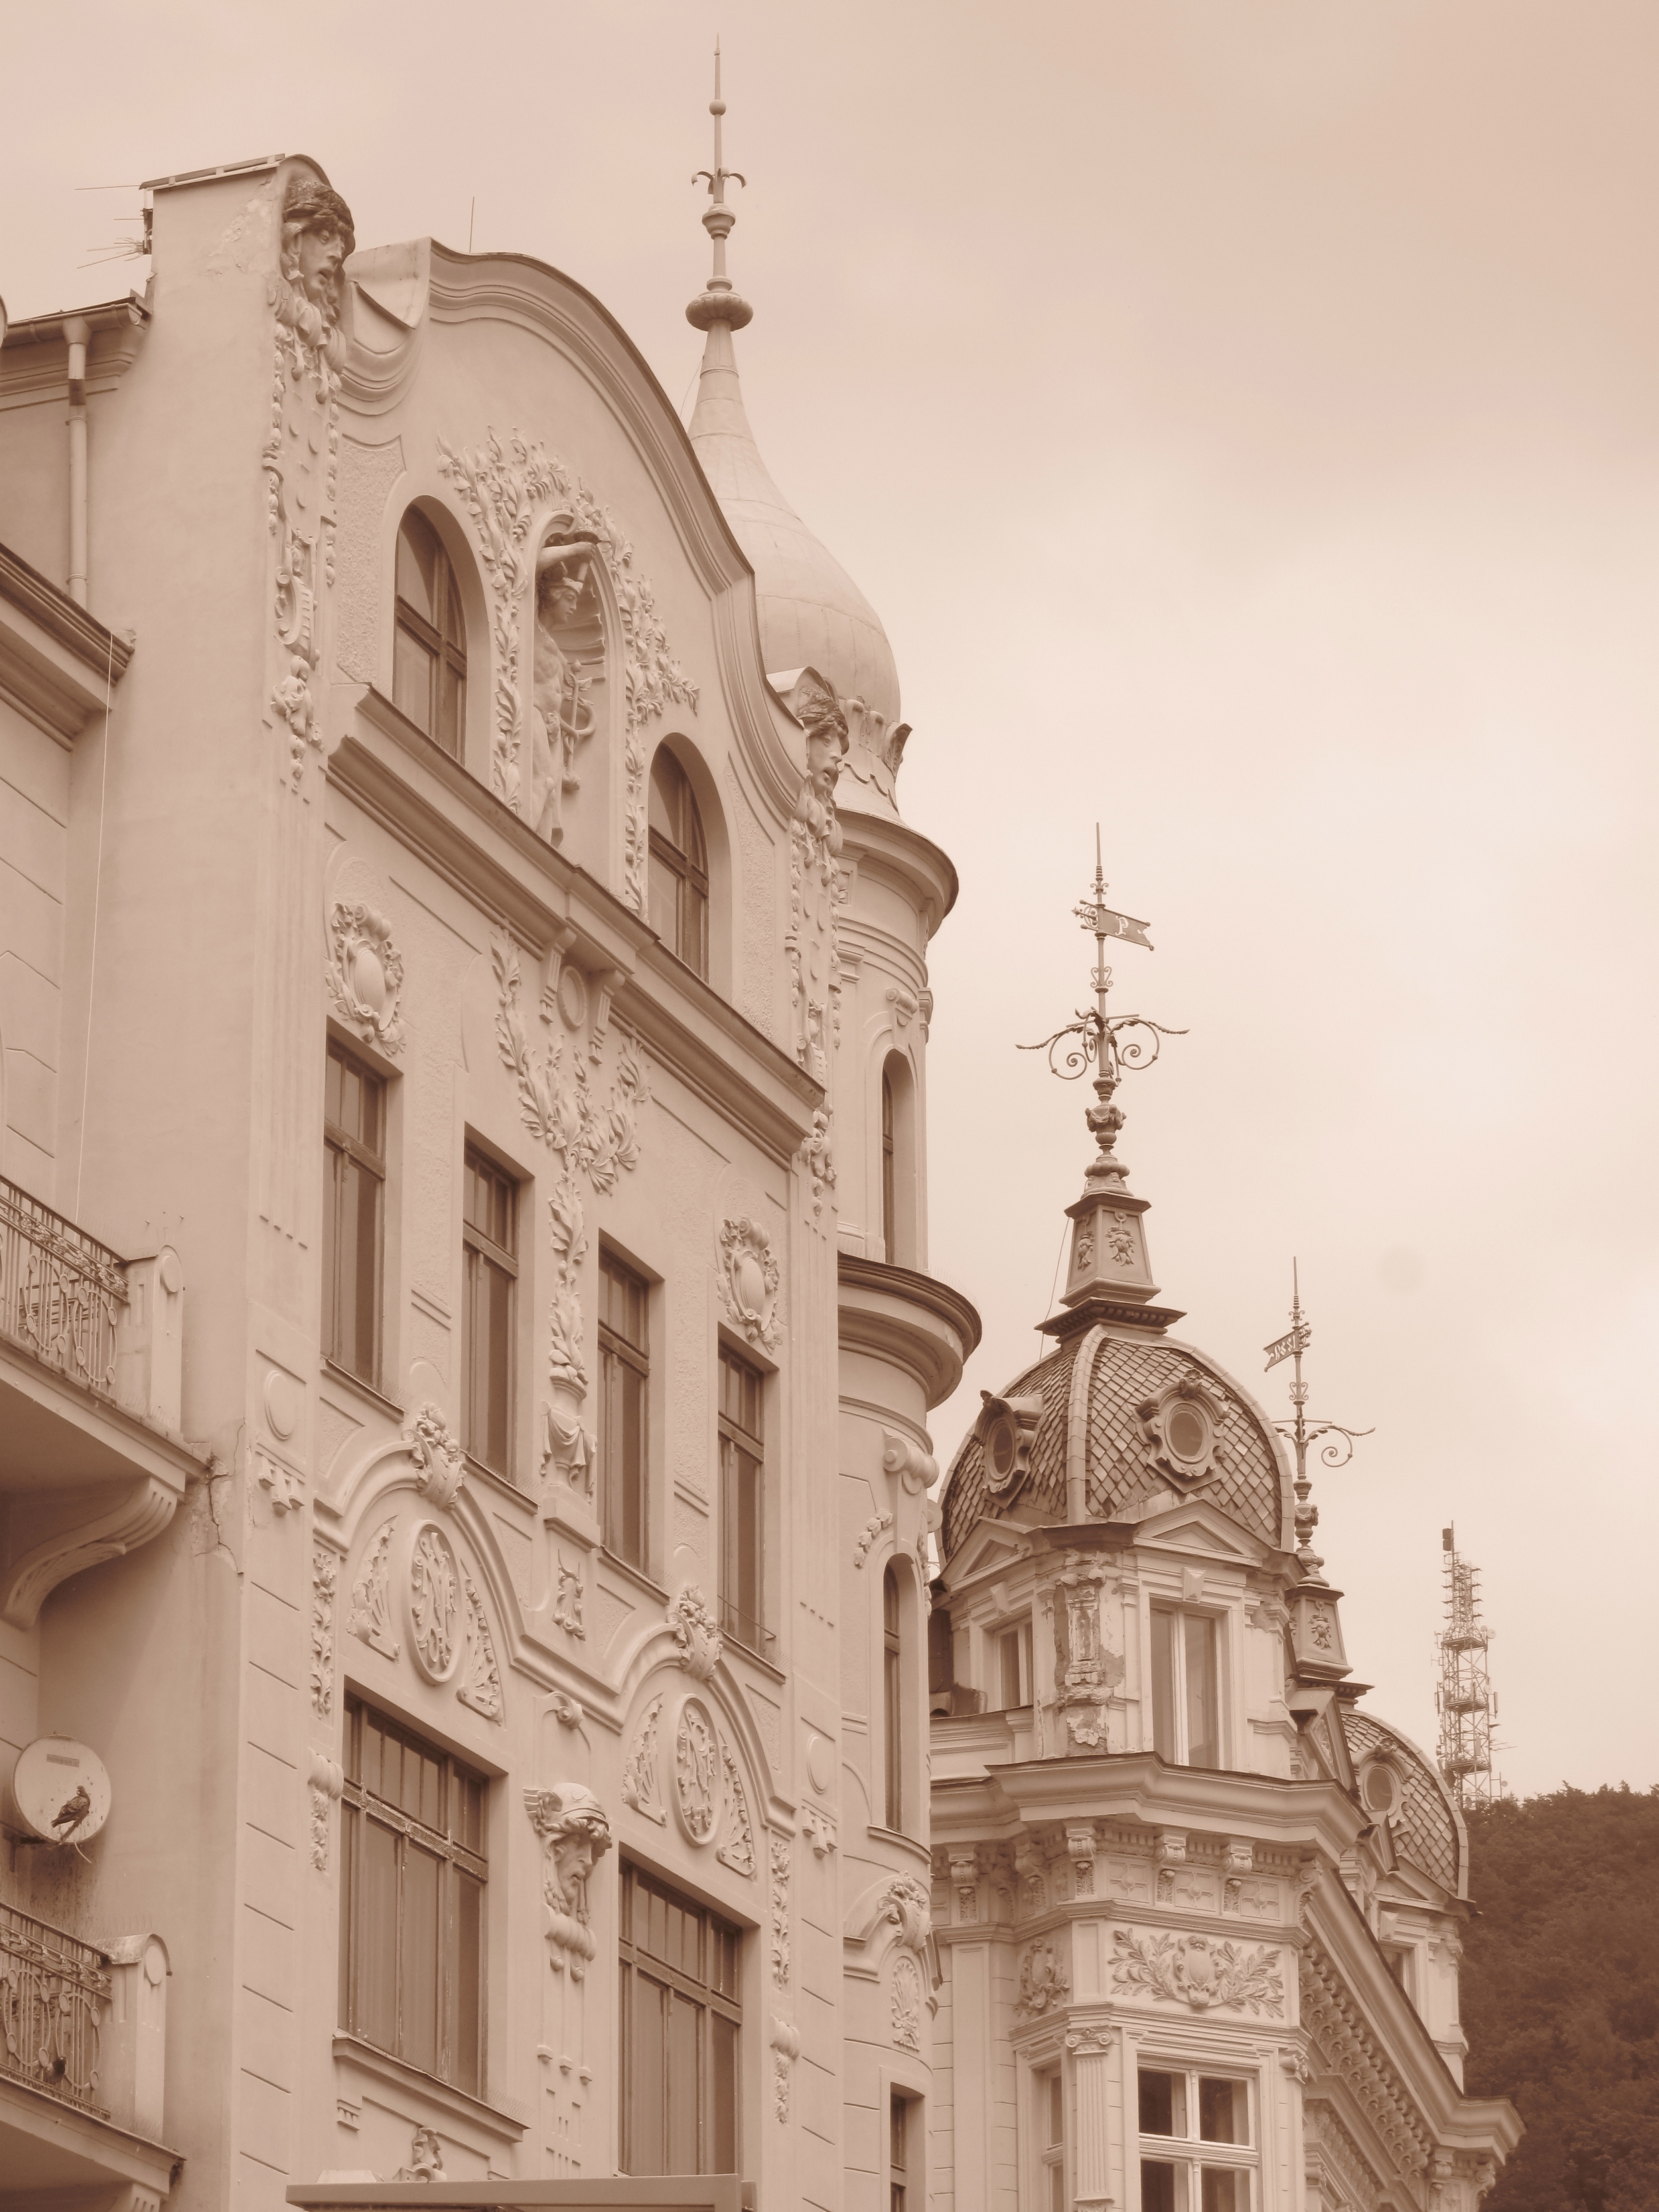 Architecture in Karlovy Vary old town - wooden houses, parapets and spires.